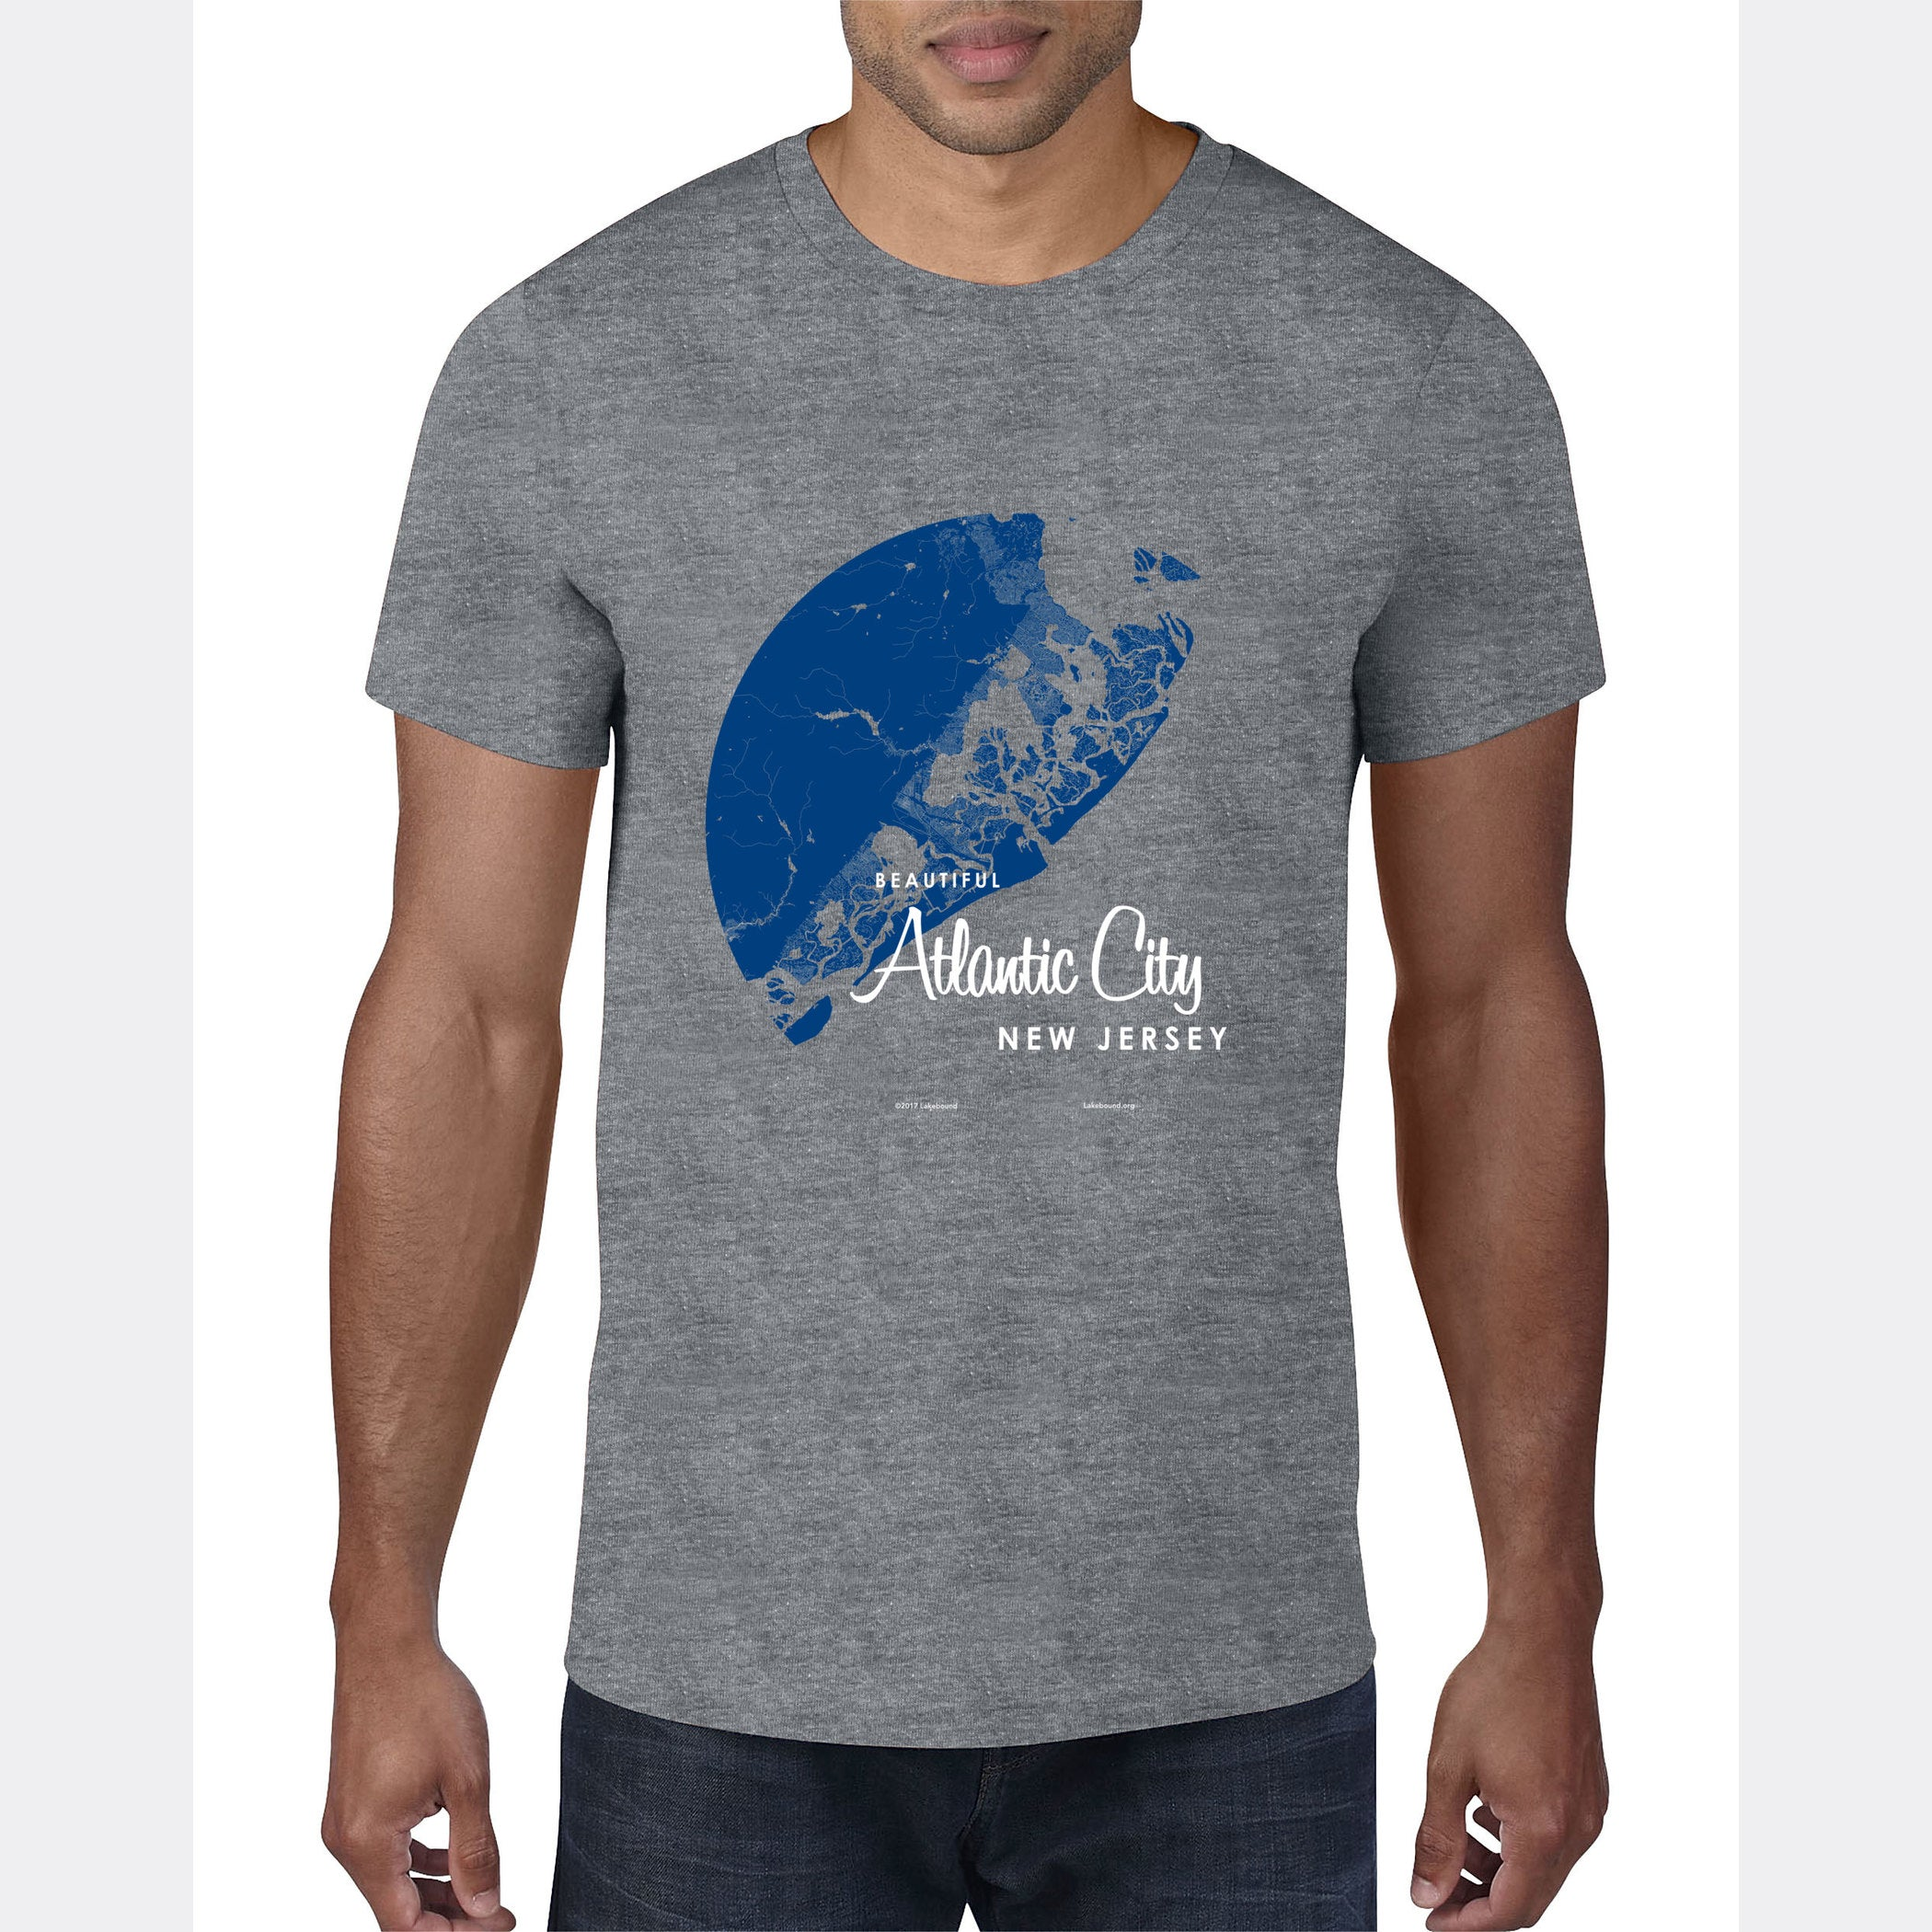 Atlantic City New Jersey, T-Shirt